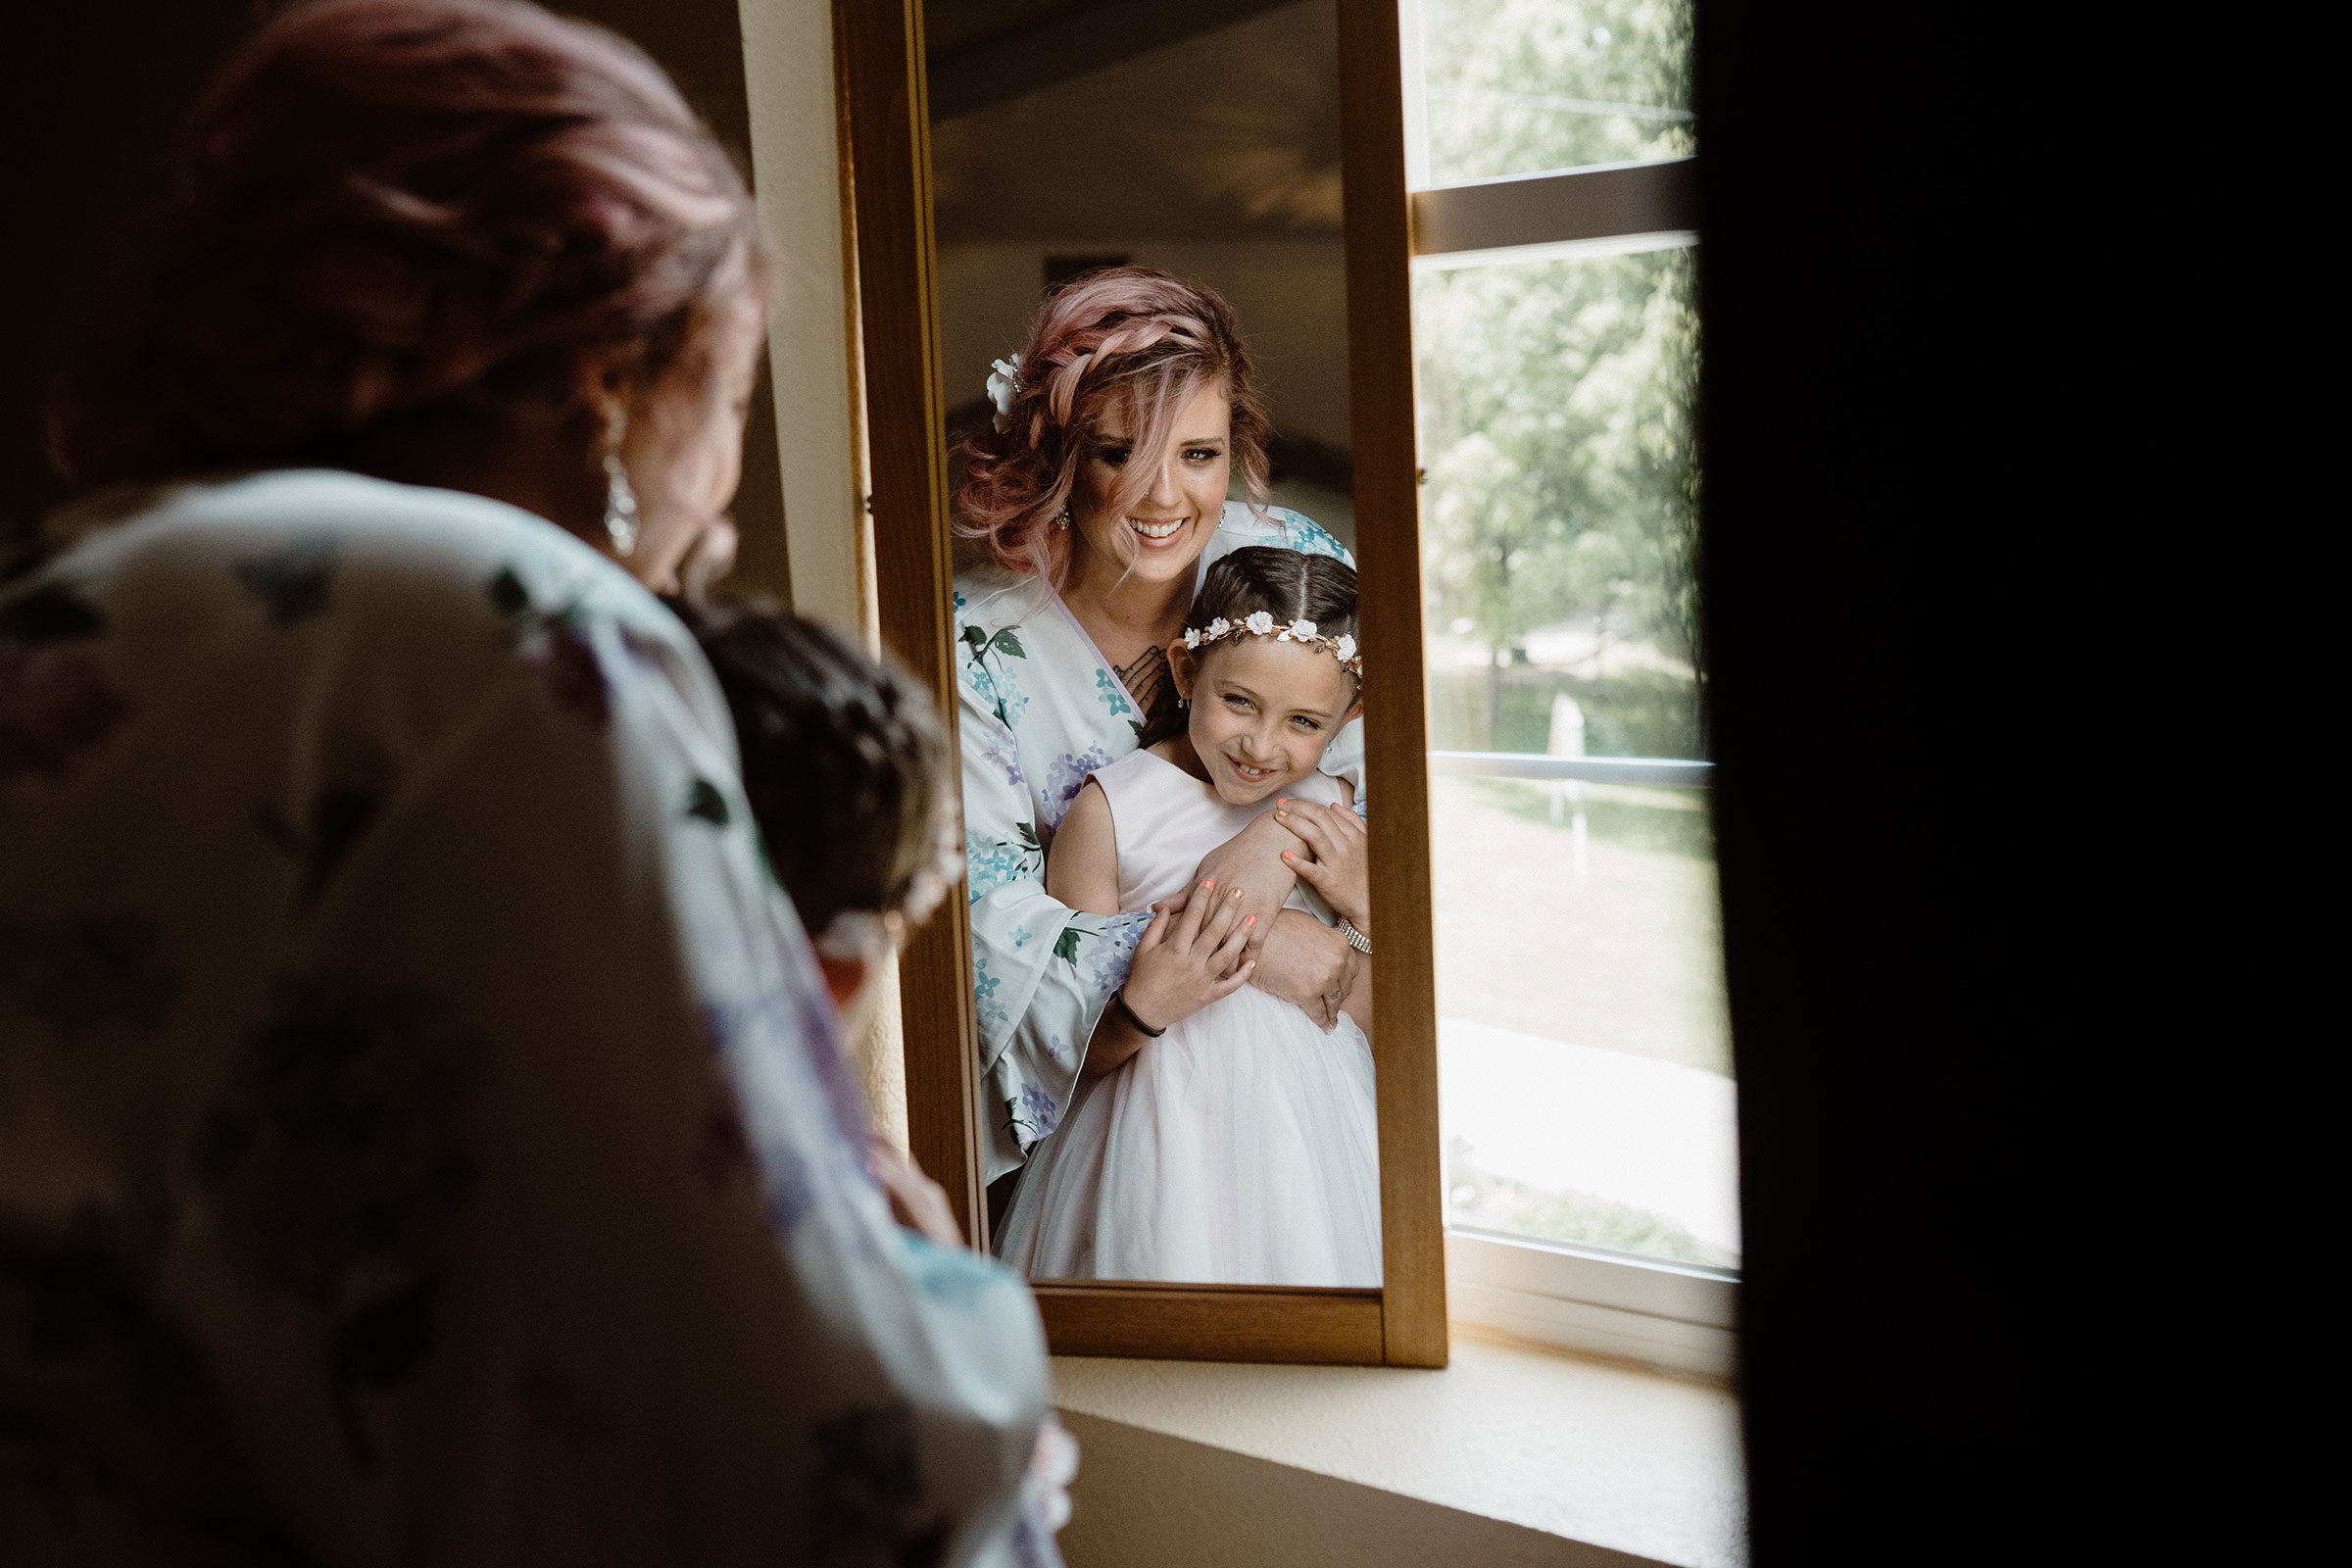 bride-holding-and-smiling-at-flower-girl-in-mirror-wedding-summerset-winery-indianola-iowa-raelyn-ramey-photography.jpg